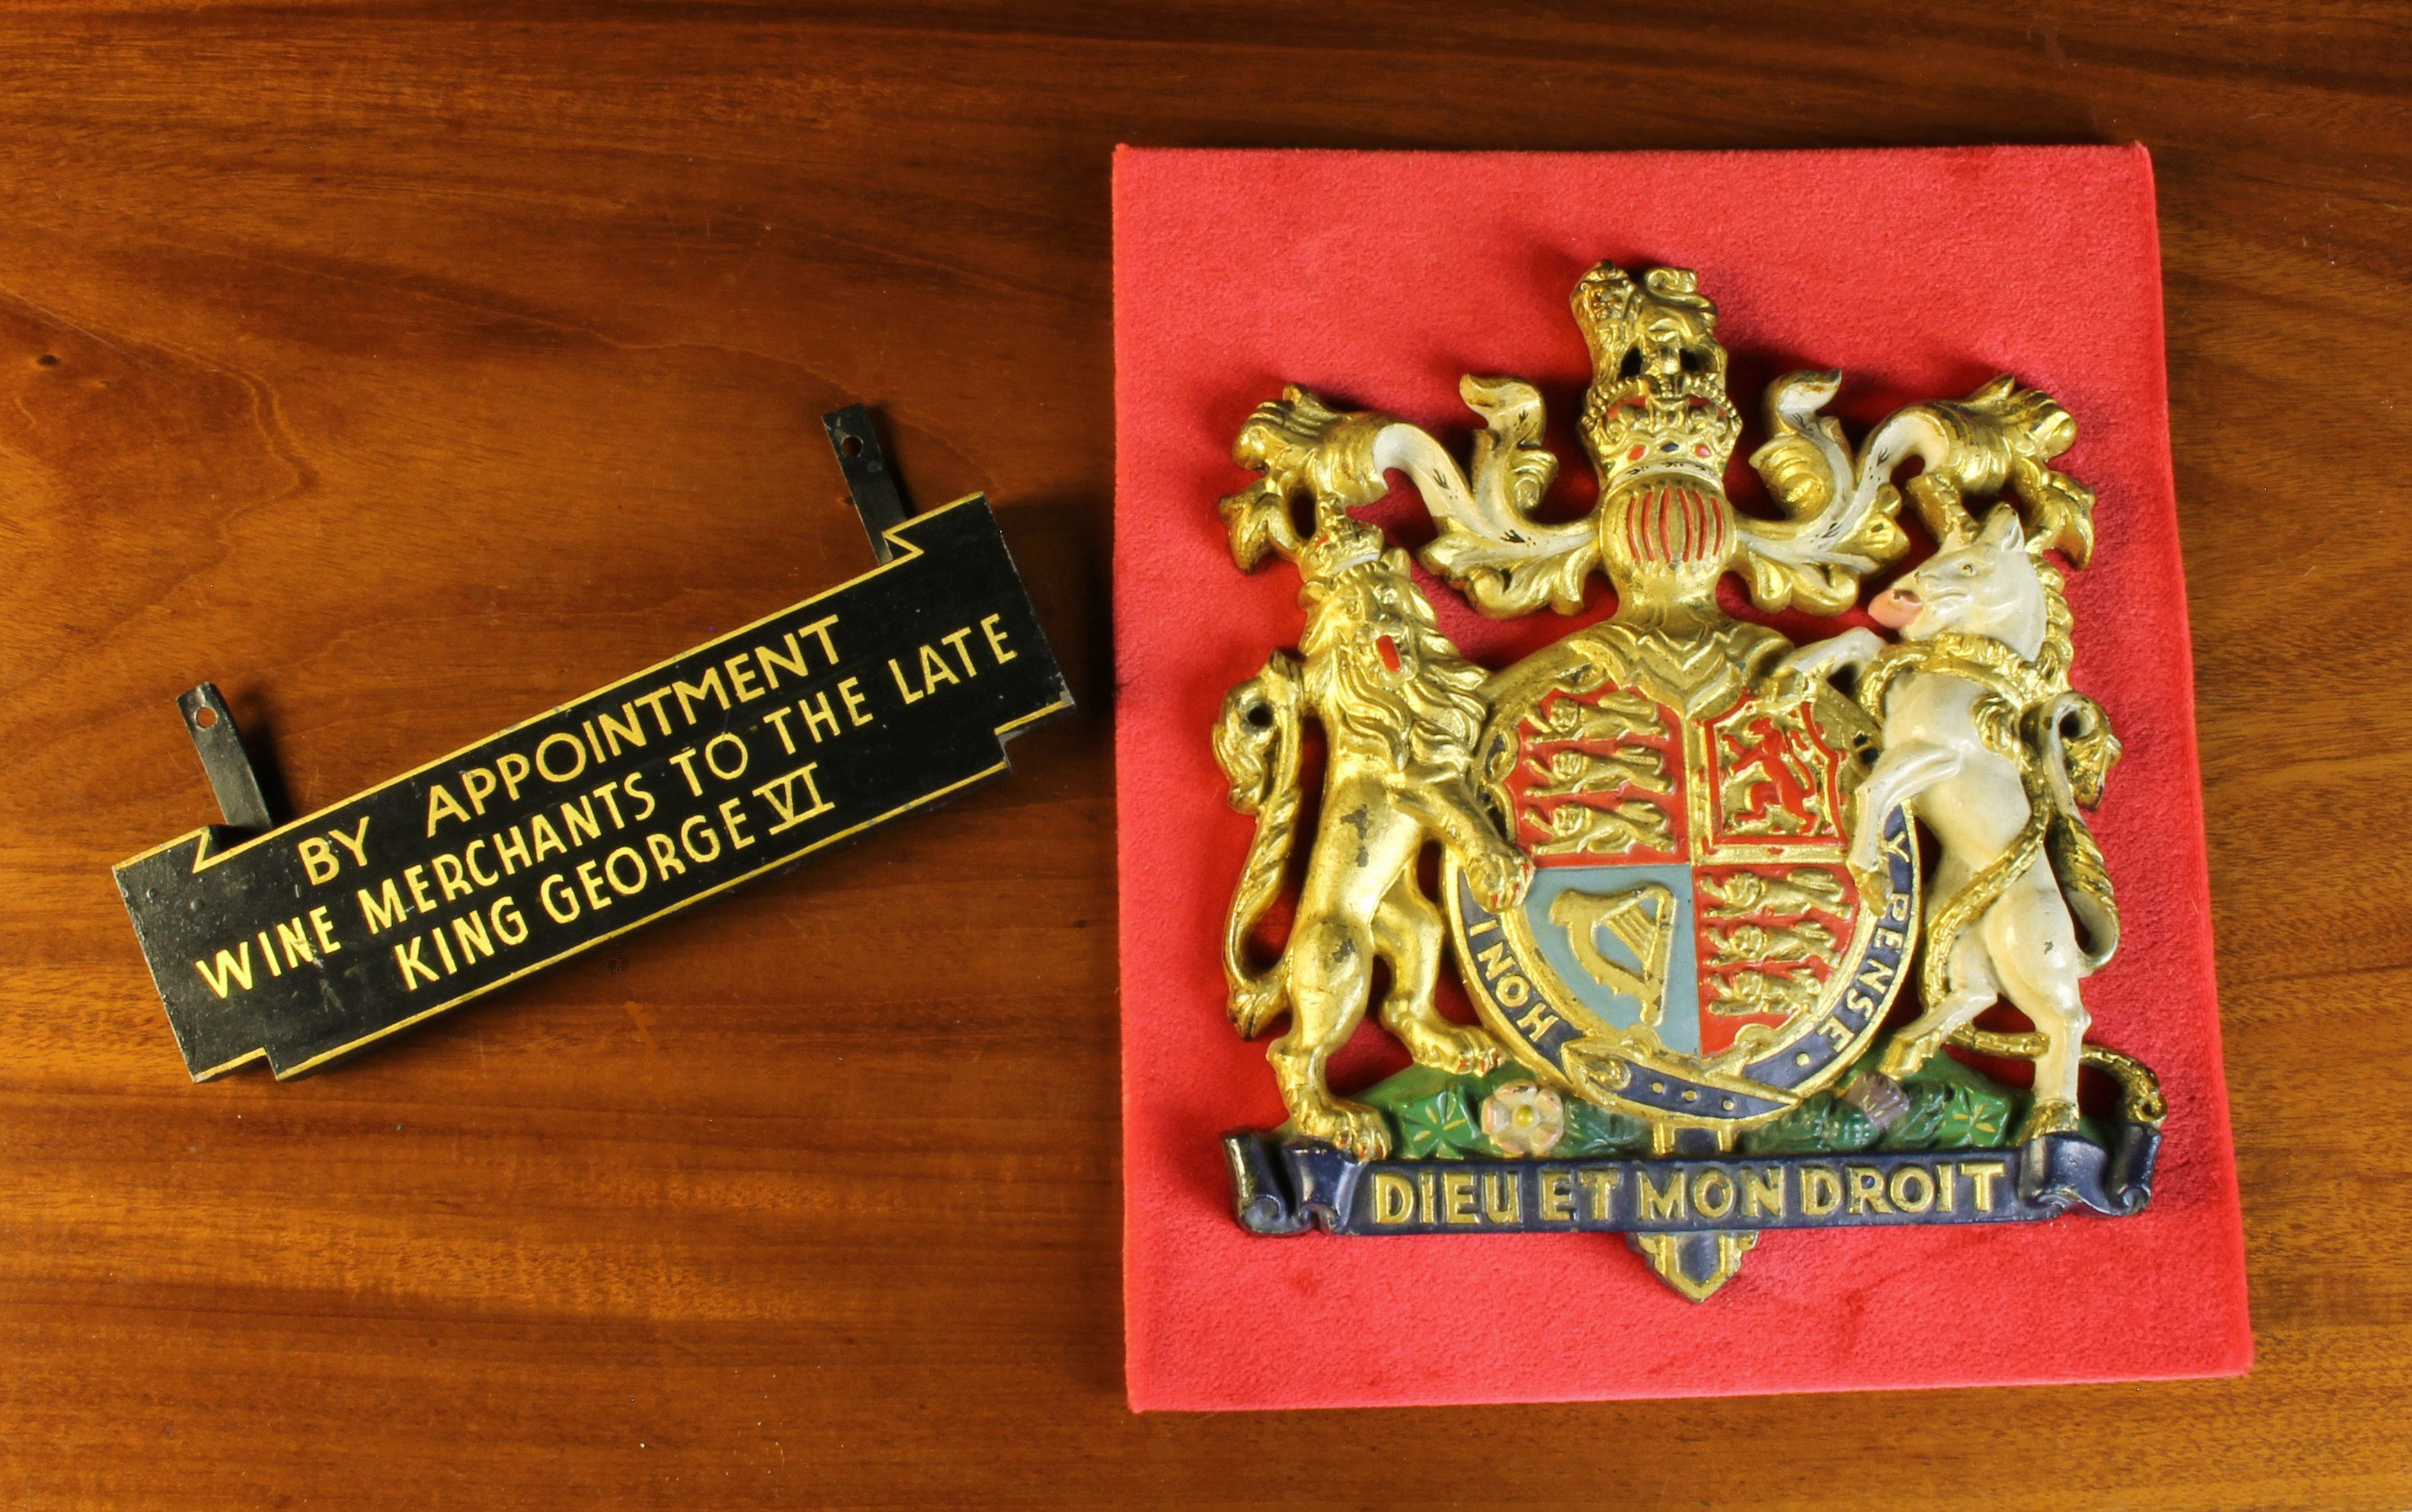 A Cast Metal Royal Crest enriched with vibrant polychrome paint-work and gilding with attached - Image 2 of 2